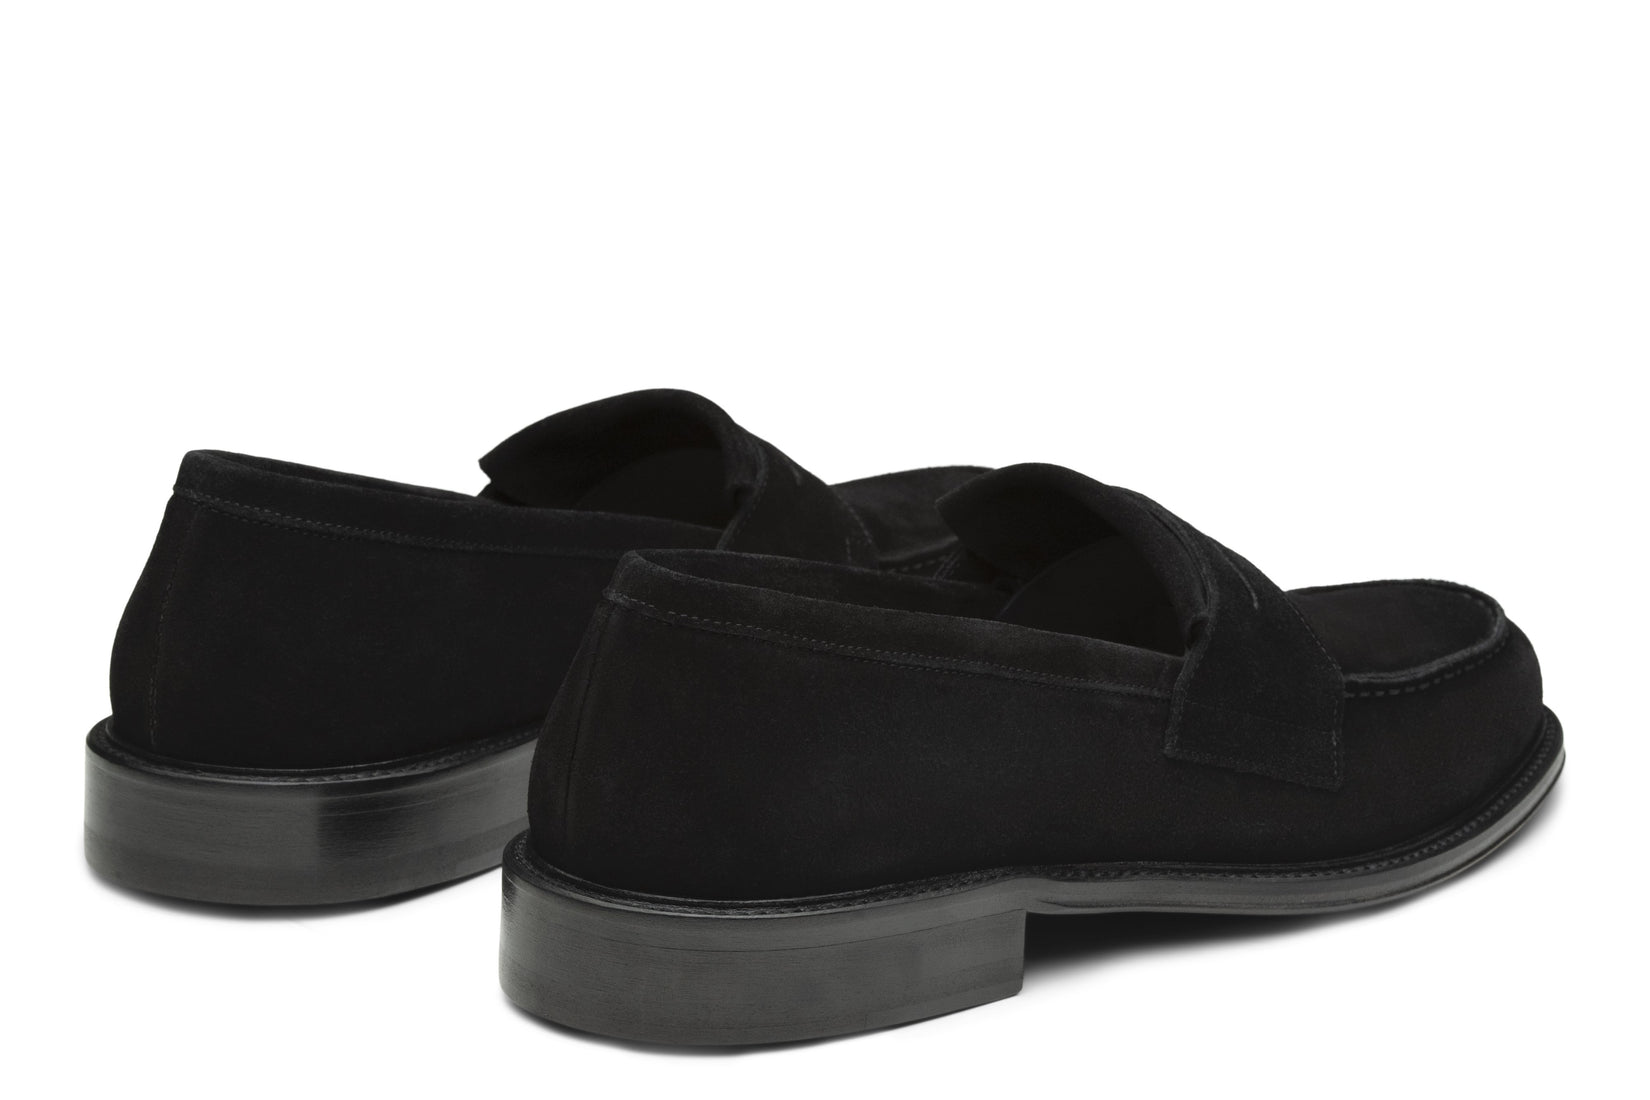 Monday Penny Loafer in Black (FINAL SALE)